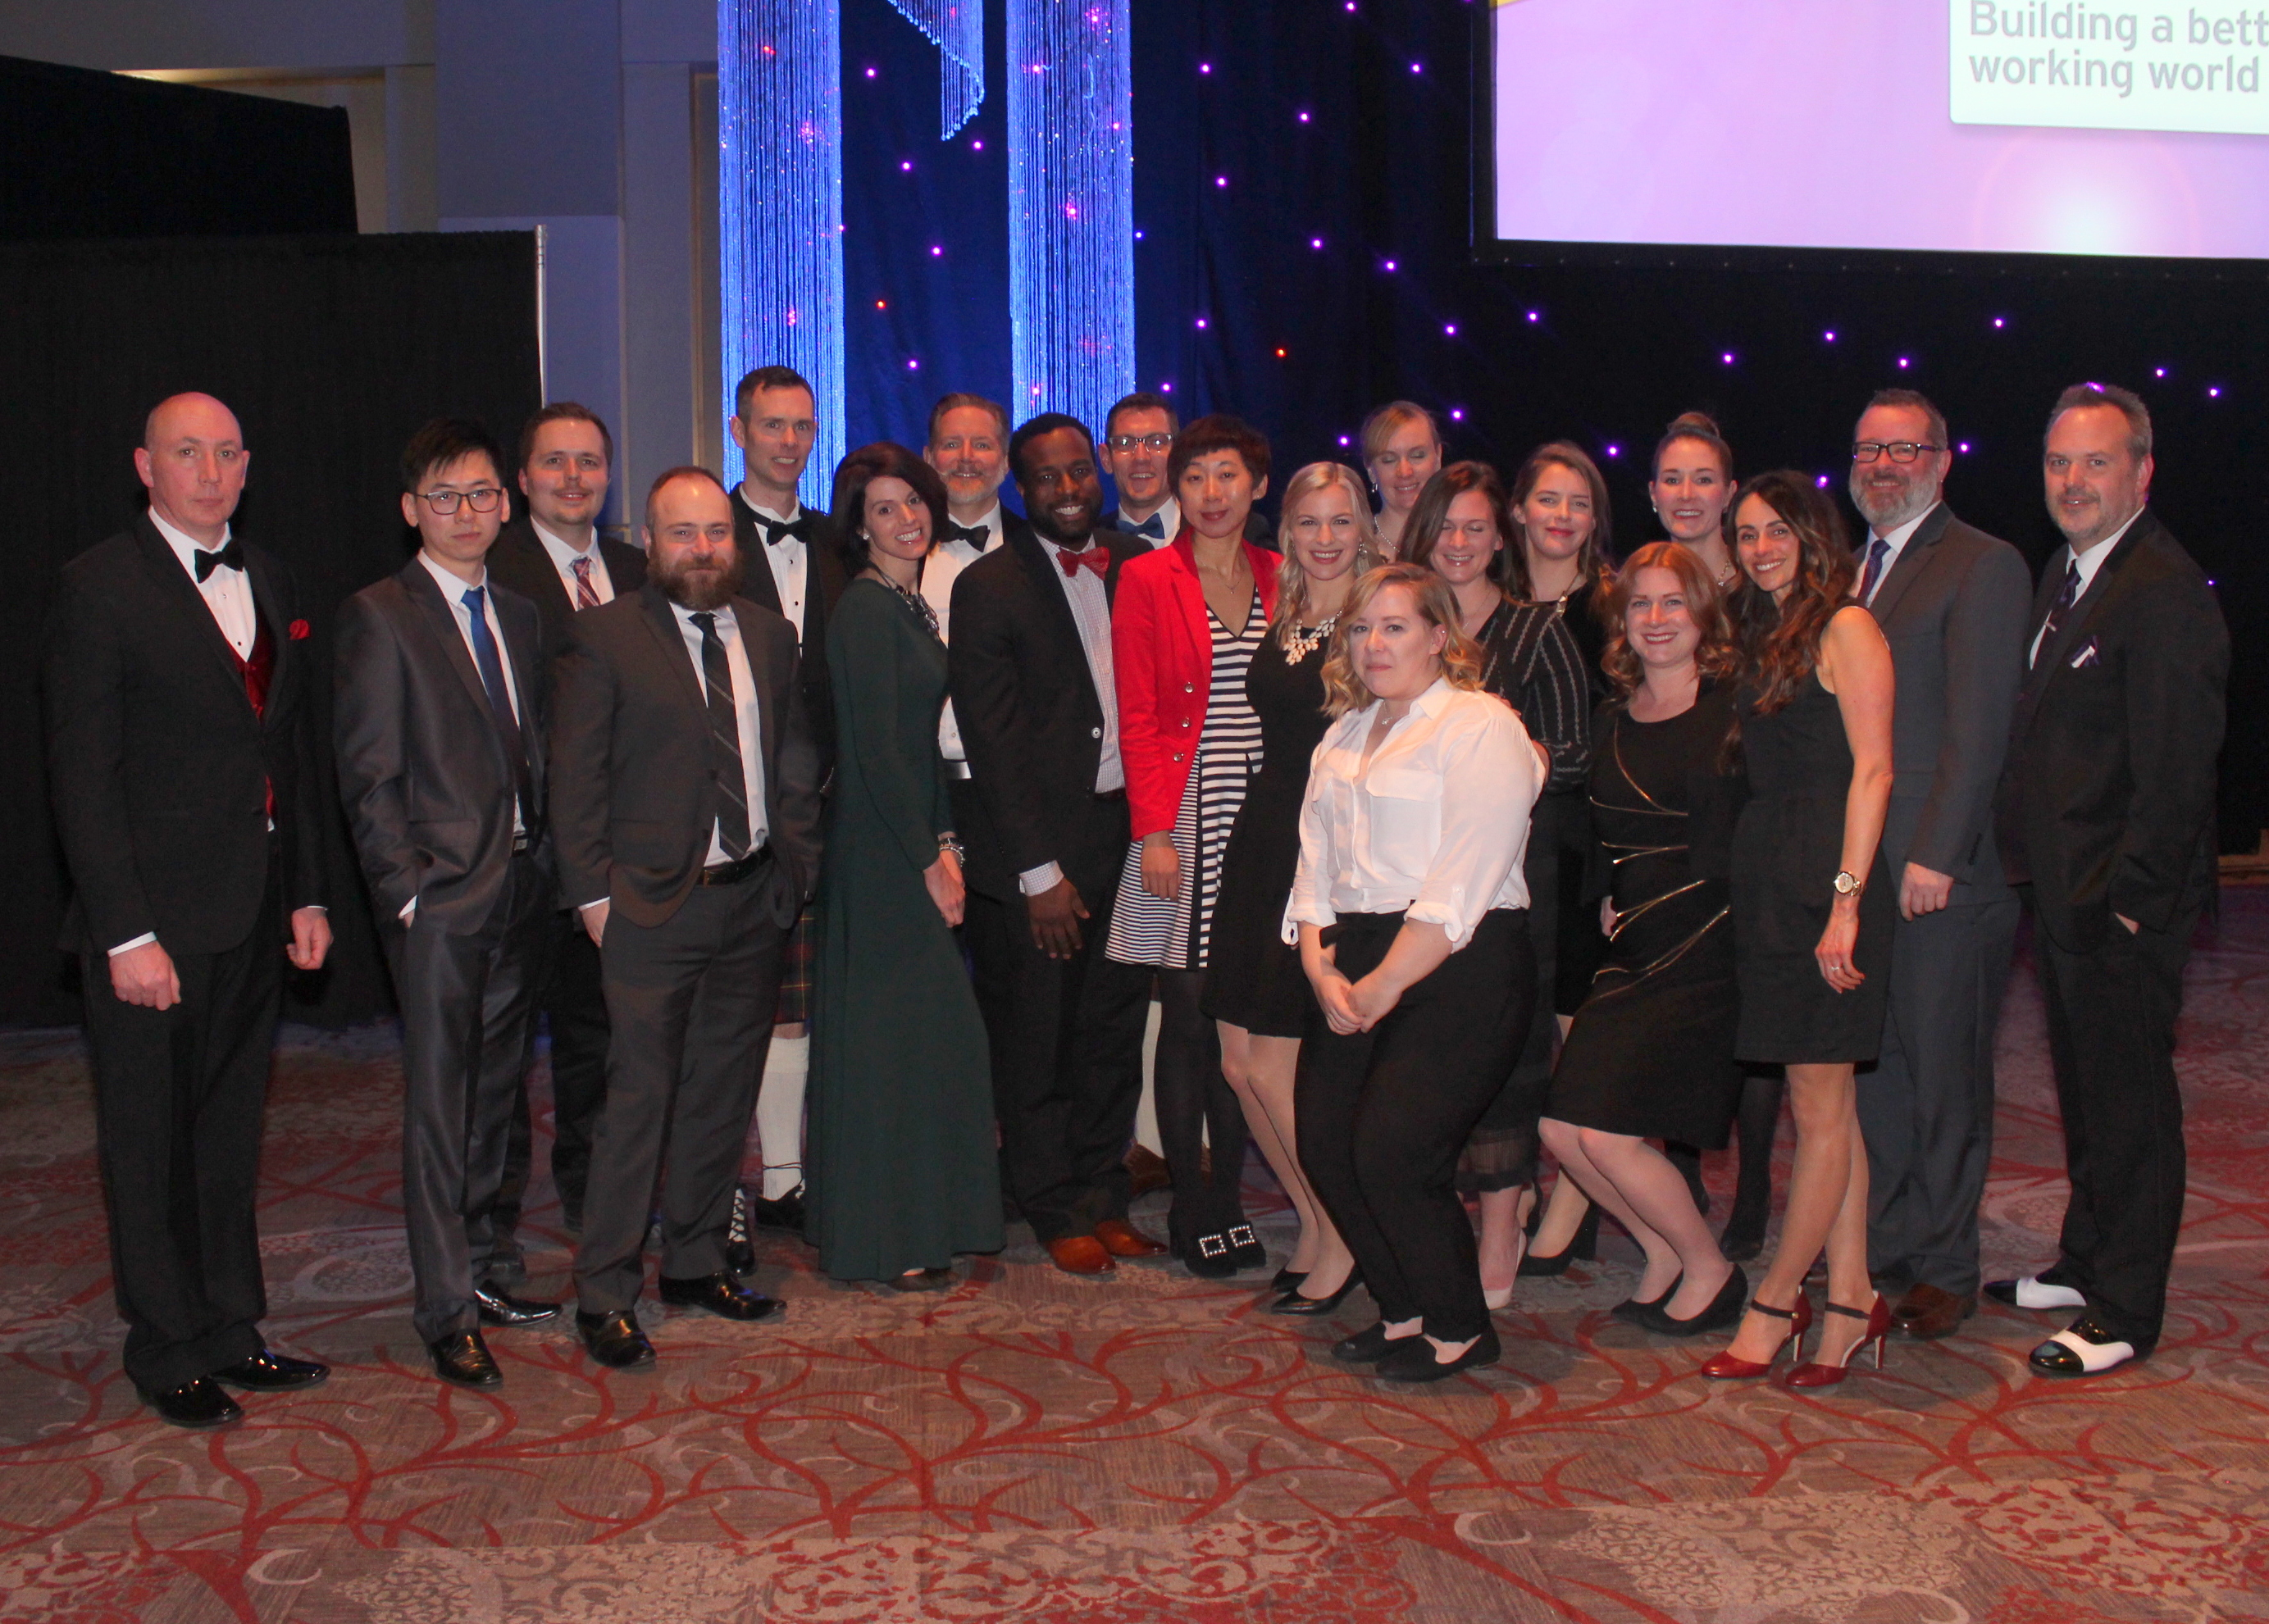 An image of the Echidna team that attended the Business Achievement Awards